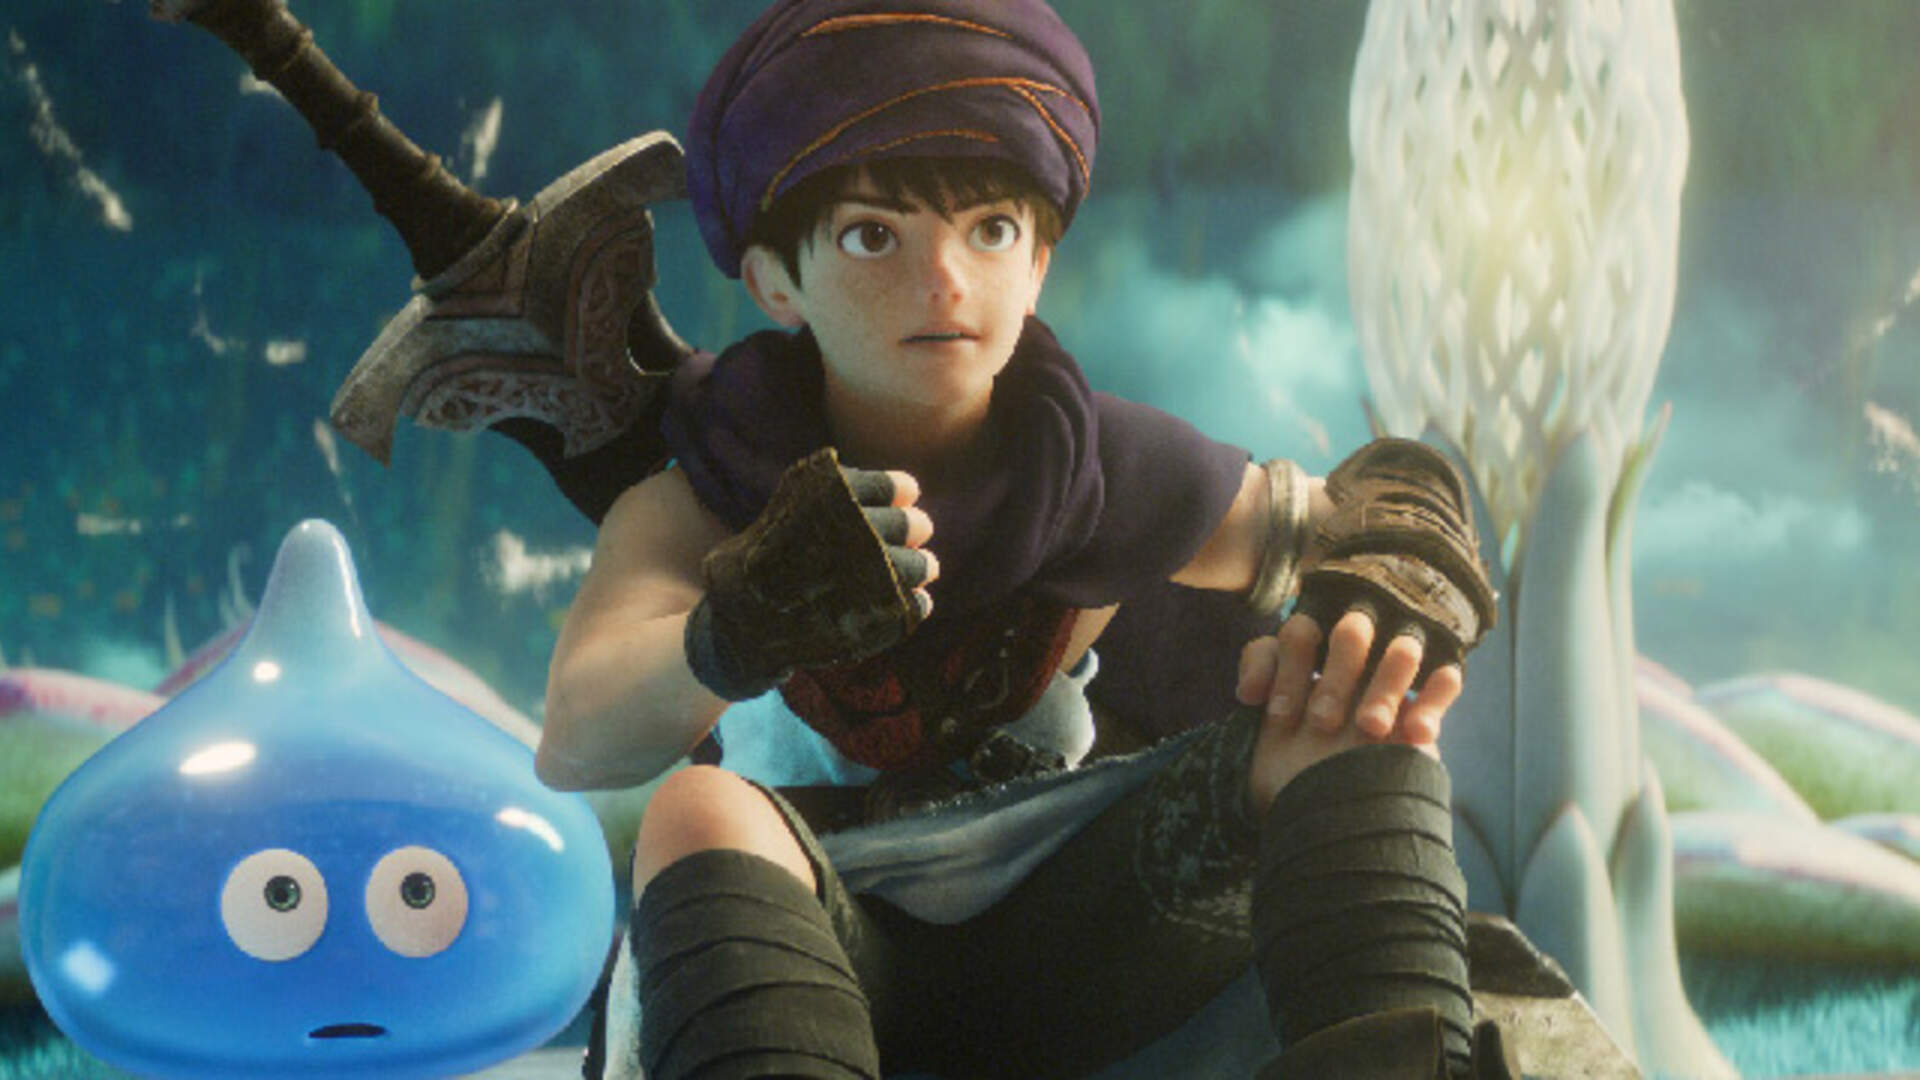 Dragon Quest: Your Story, The CG Movie Based on Dragon Quest 5, Gets Its First Trailer